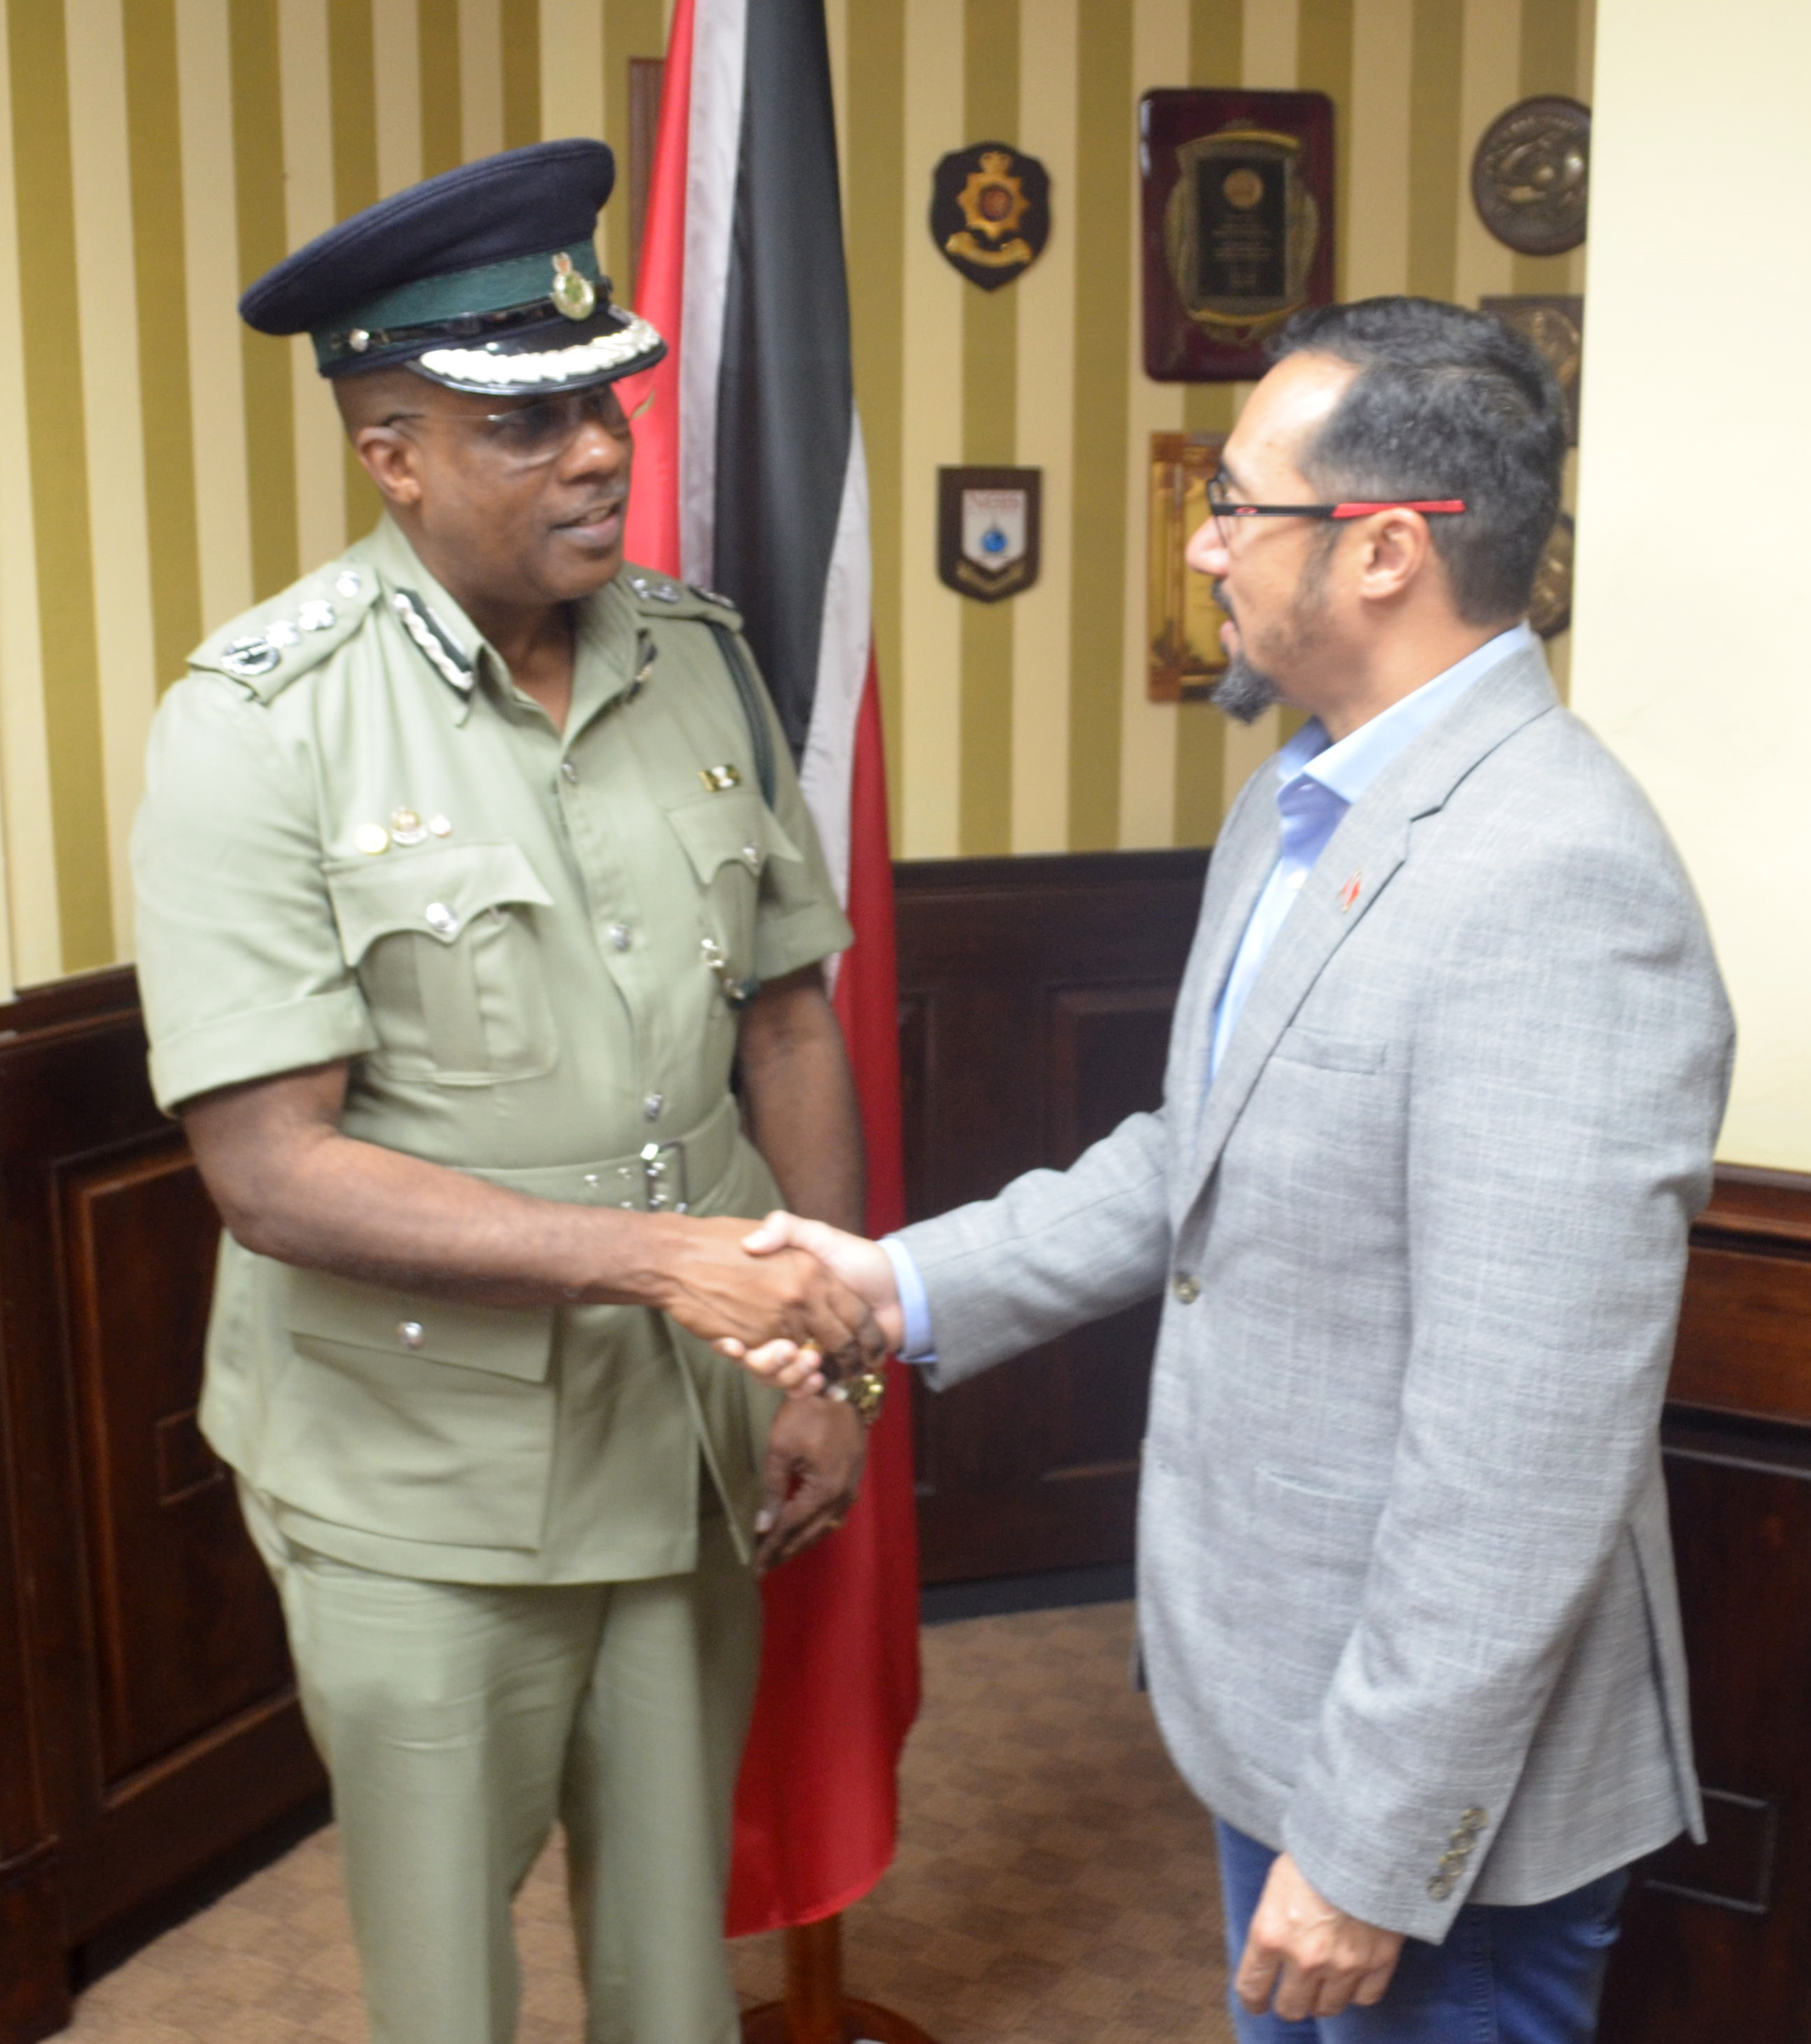 Minister of National Security the Honourable Stuart R. Young M.P. (right) congratulates Mr. Gerard Wilson (left) on his appointment as Commissioner of Prisons. Photo courtesy Ministry of National Security.